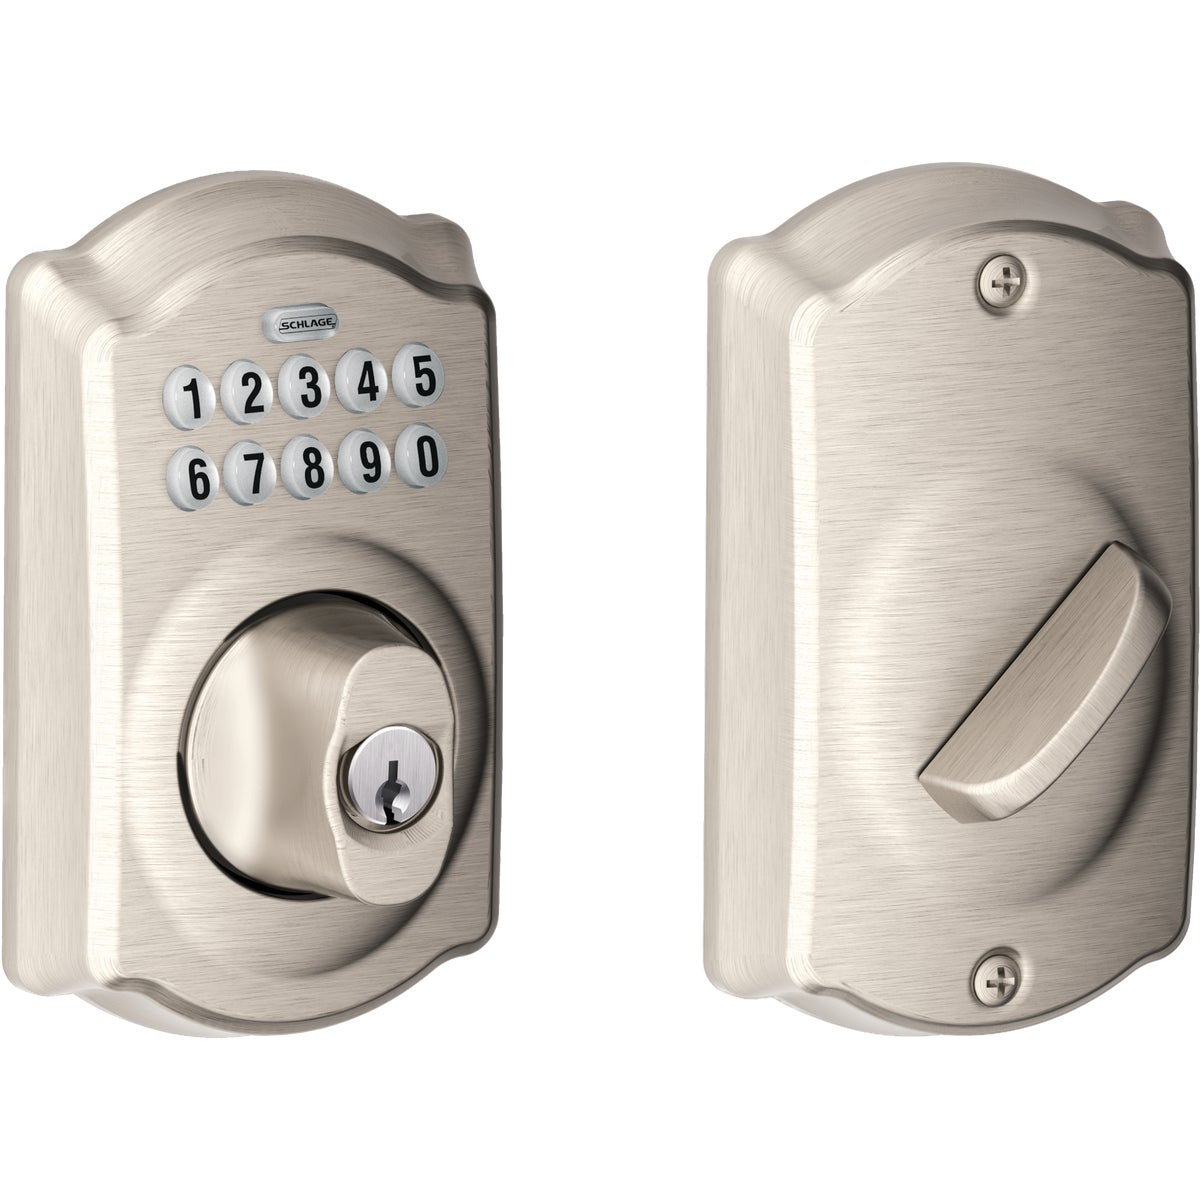 ELECTRONIC LOCK DEADBOLT - BE365VCAM619 by Schlage Lock Co